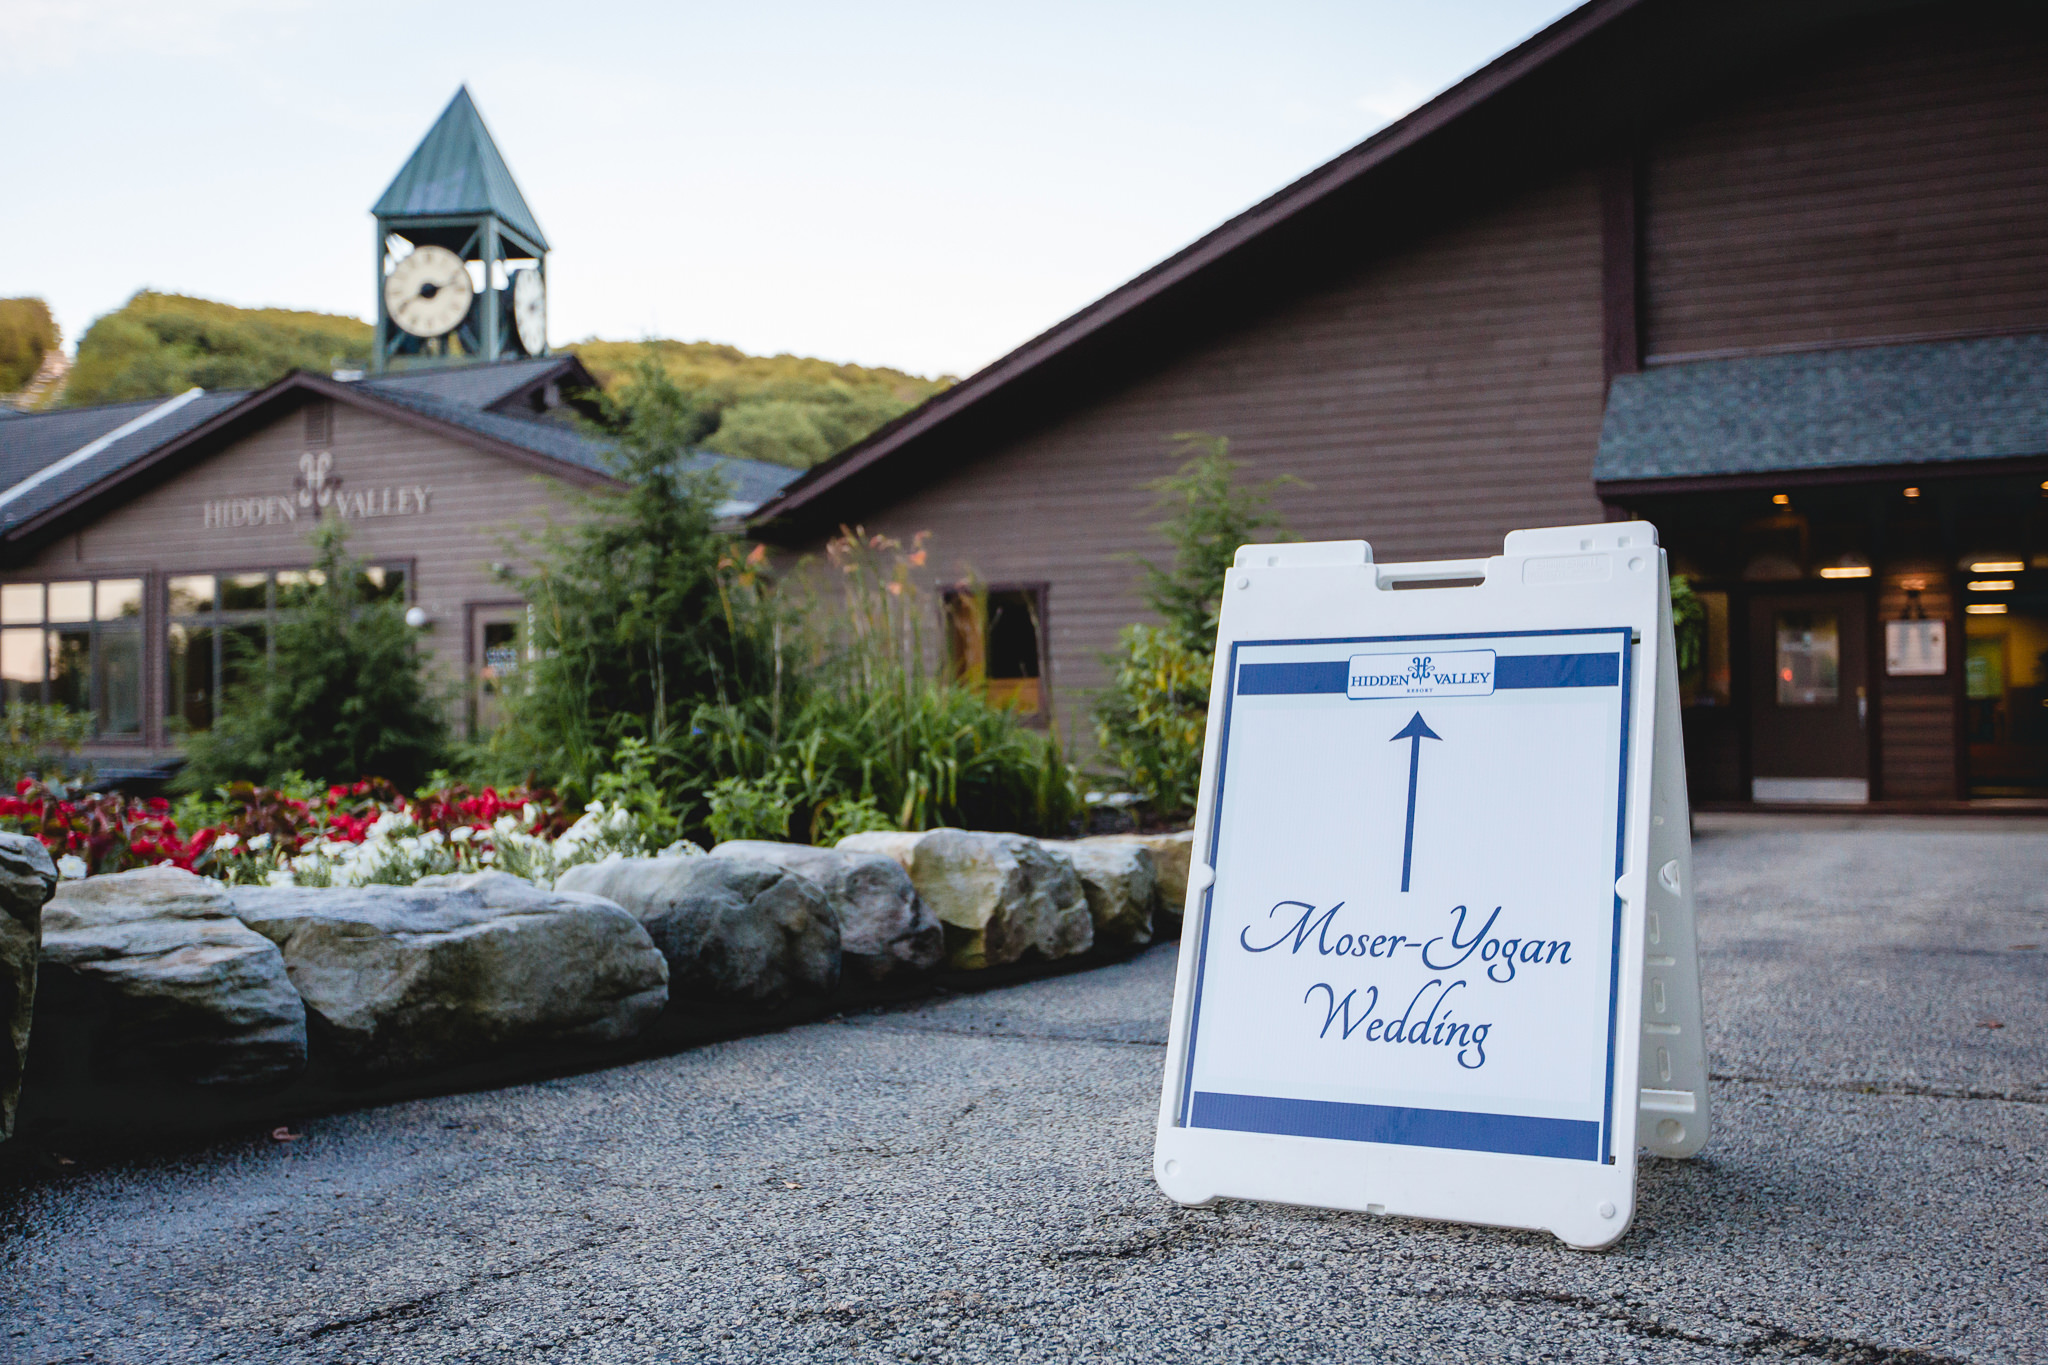 Welcome sign outside a wedding reception at Hidden Valley Resort